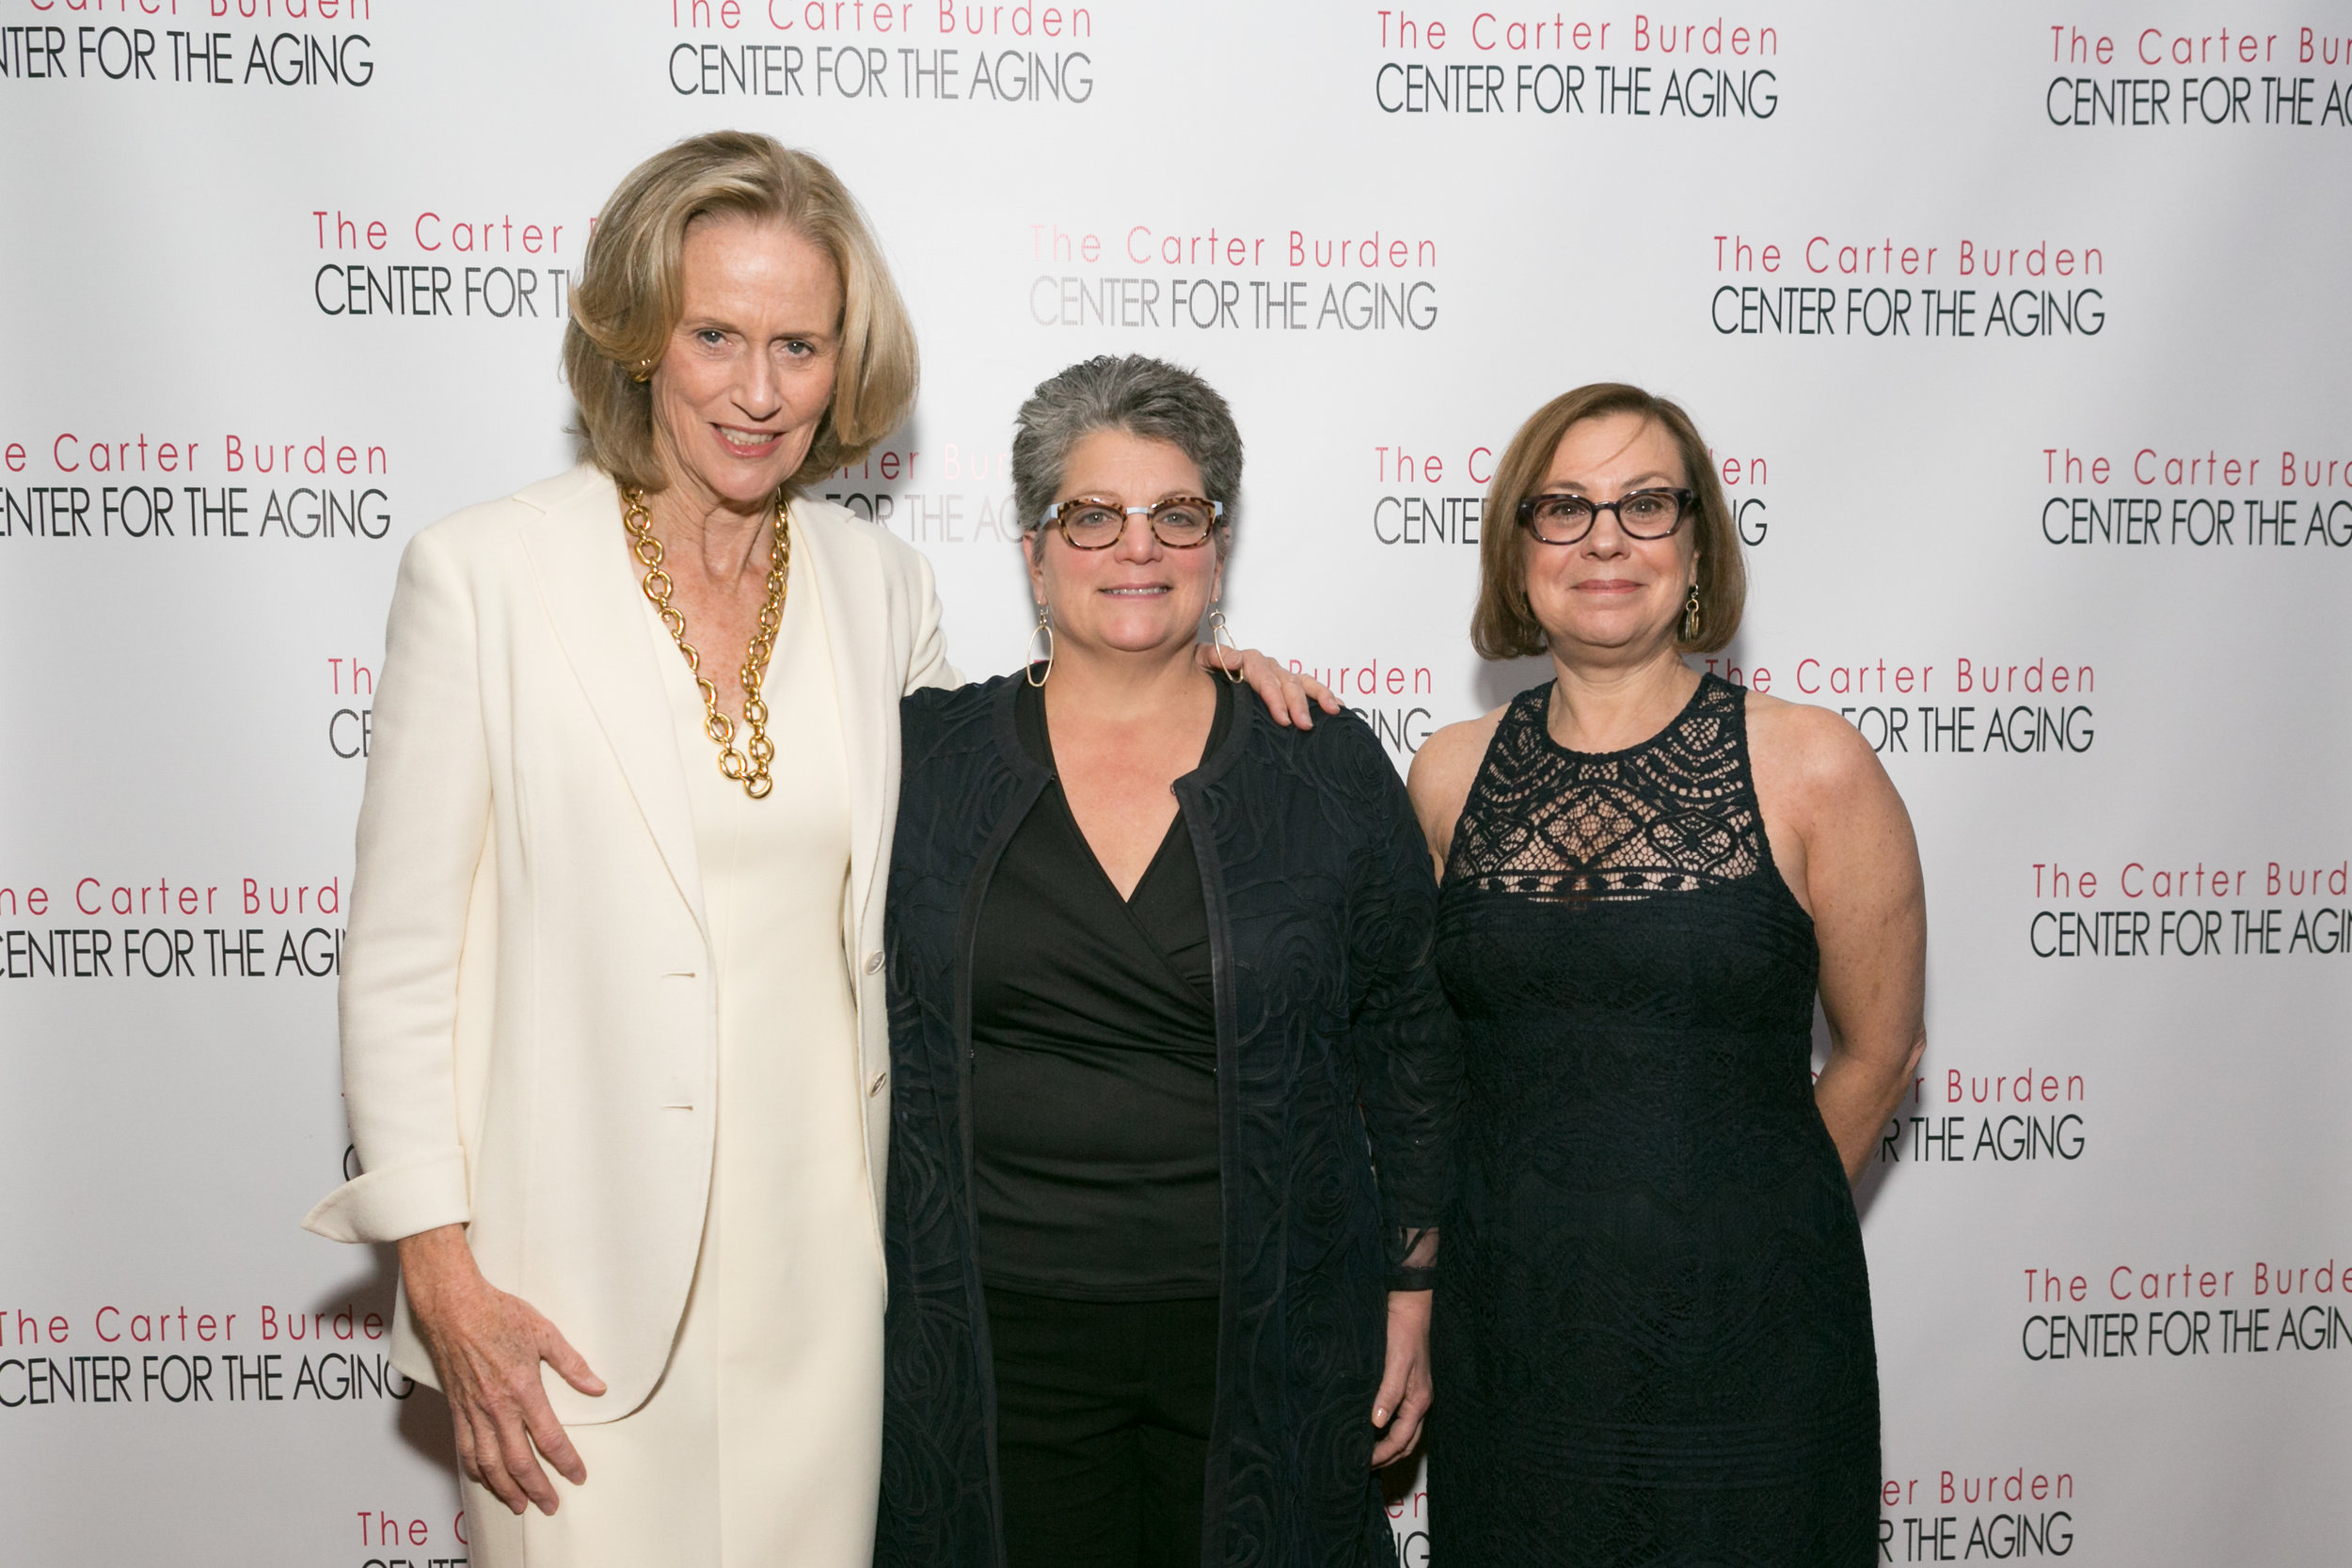 Susan L. Burden   , Board Member, Carter Burden Network;  Donna M. Corrado , Commissioner, NYC Department for the Aging;  Caryn Resnick , Deputy Commissioner, NYC Department for the Aging